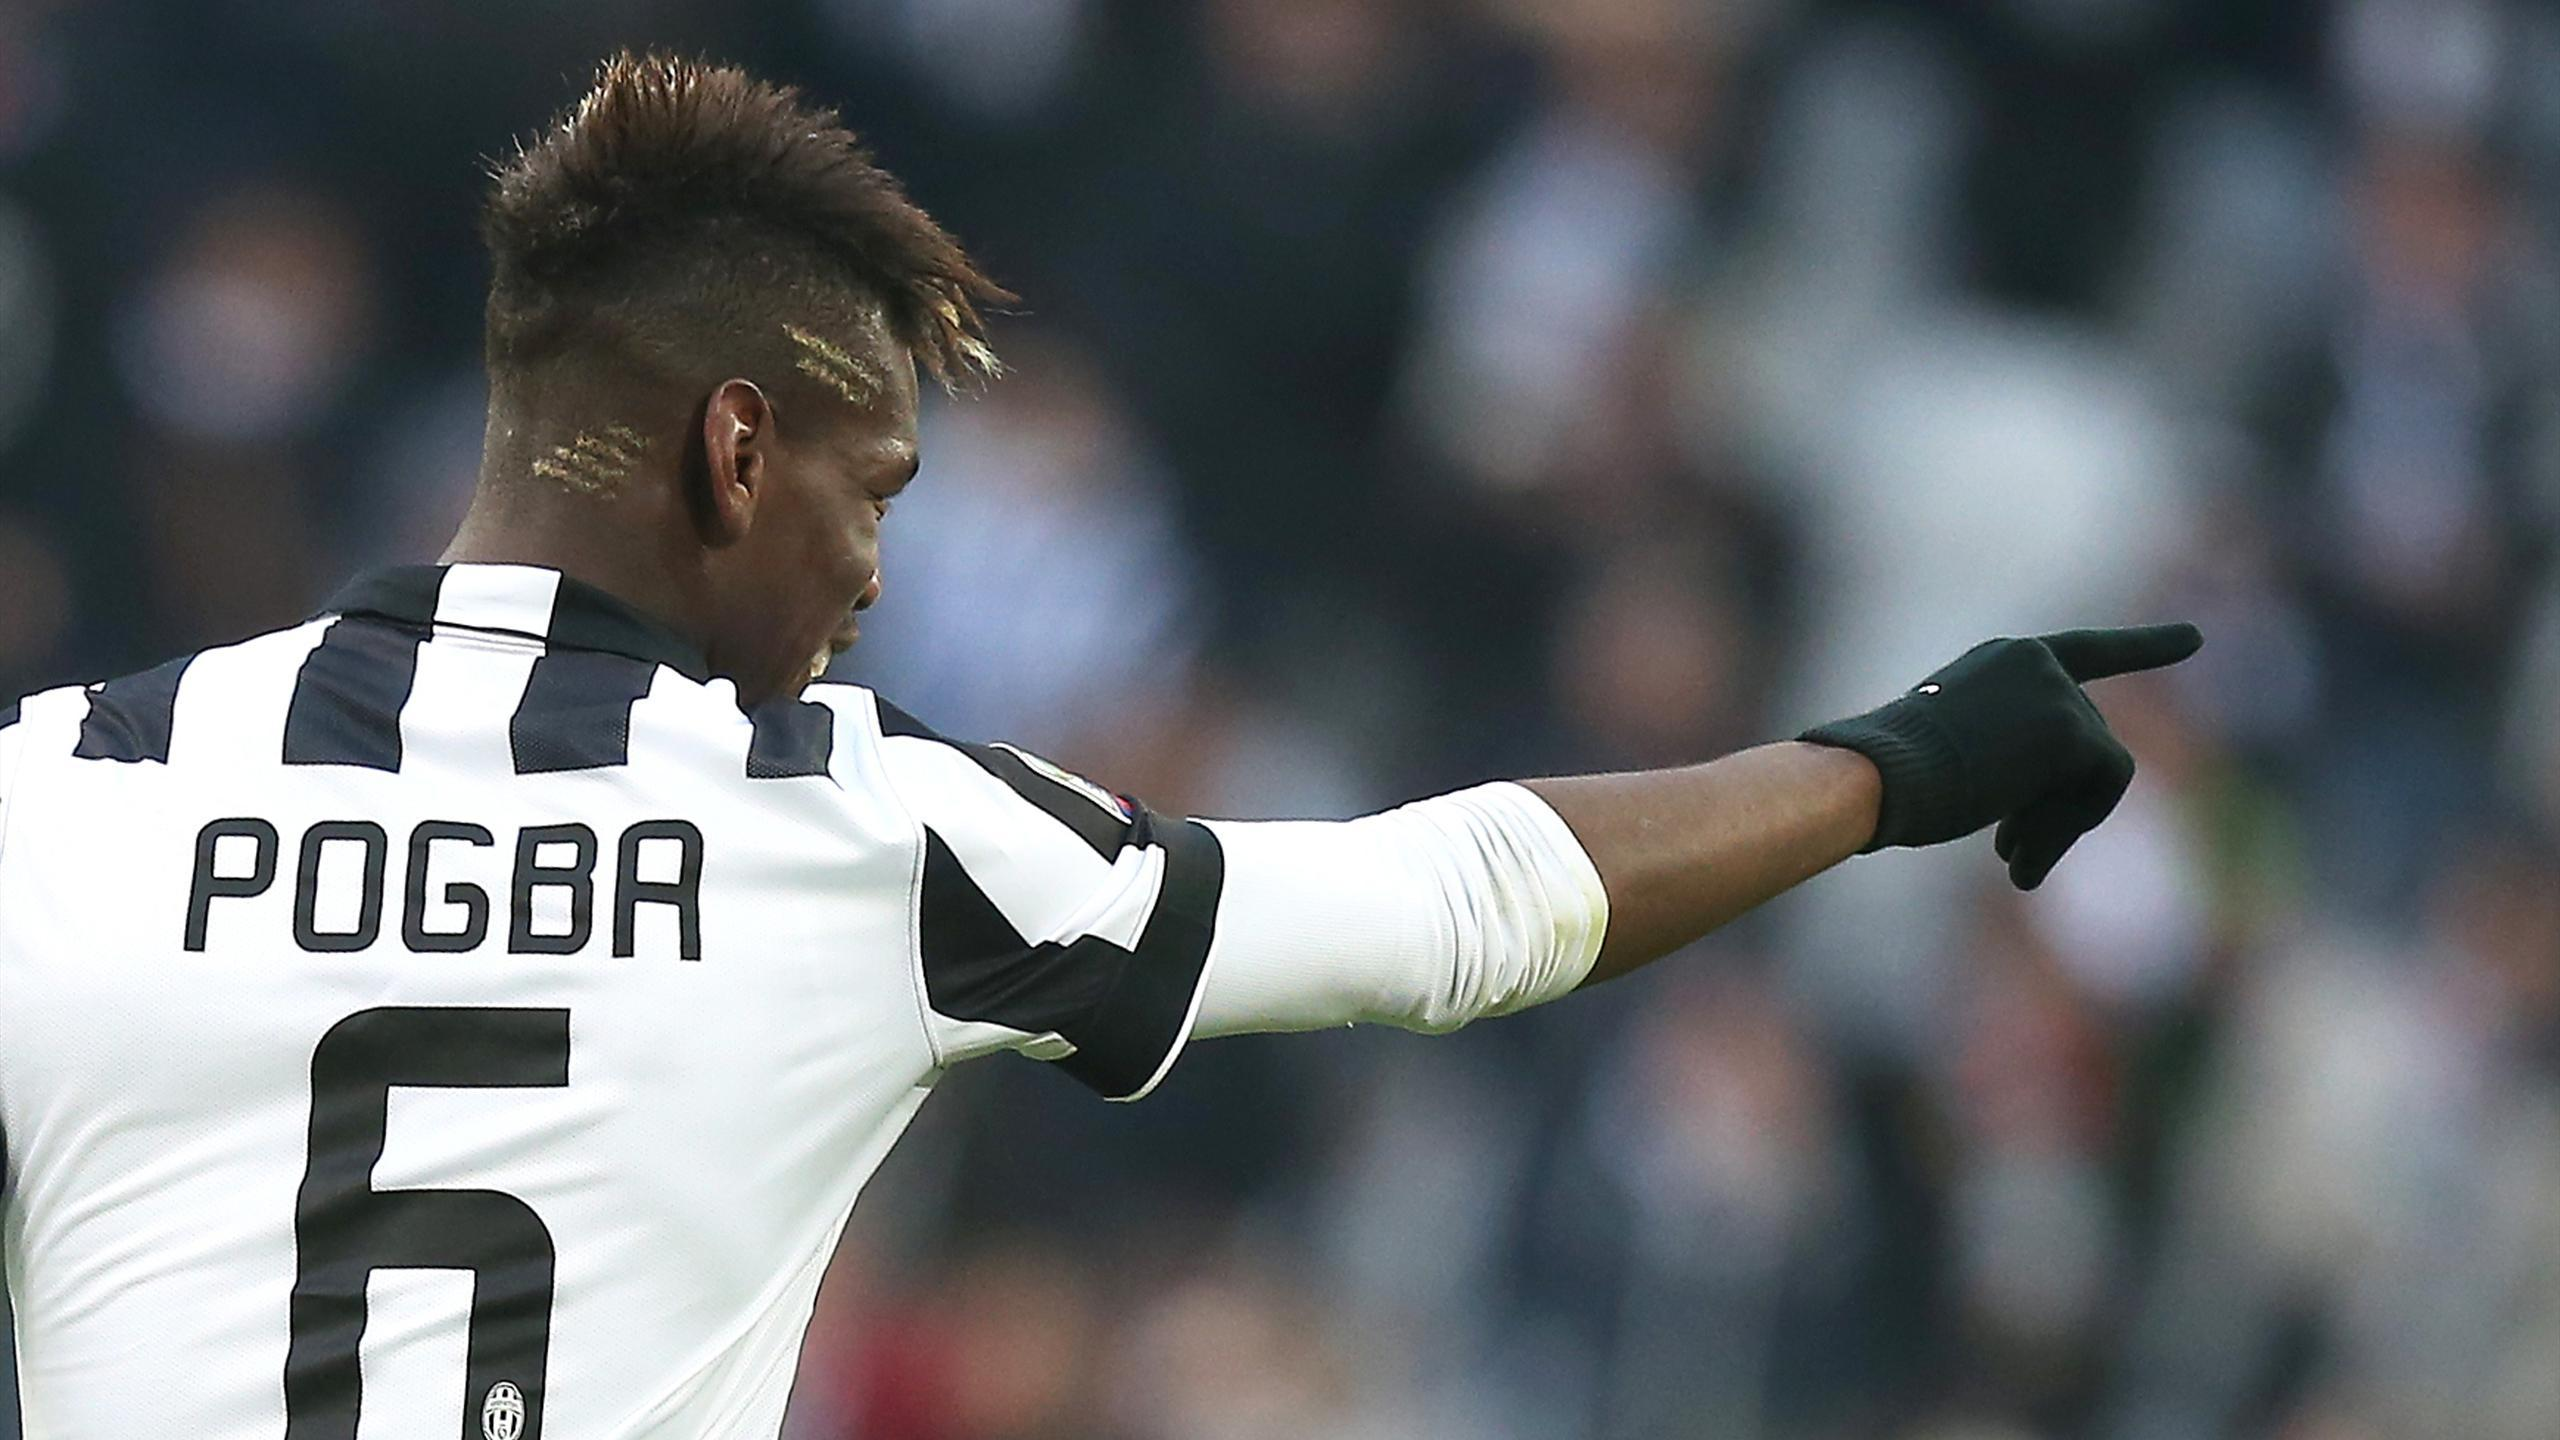 Paul Labile Pogba Wallpapers HD